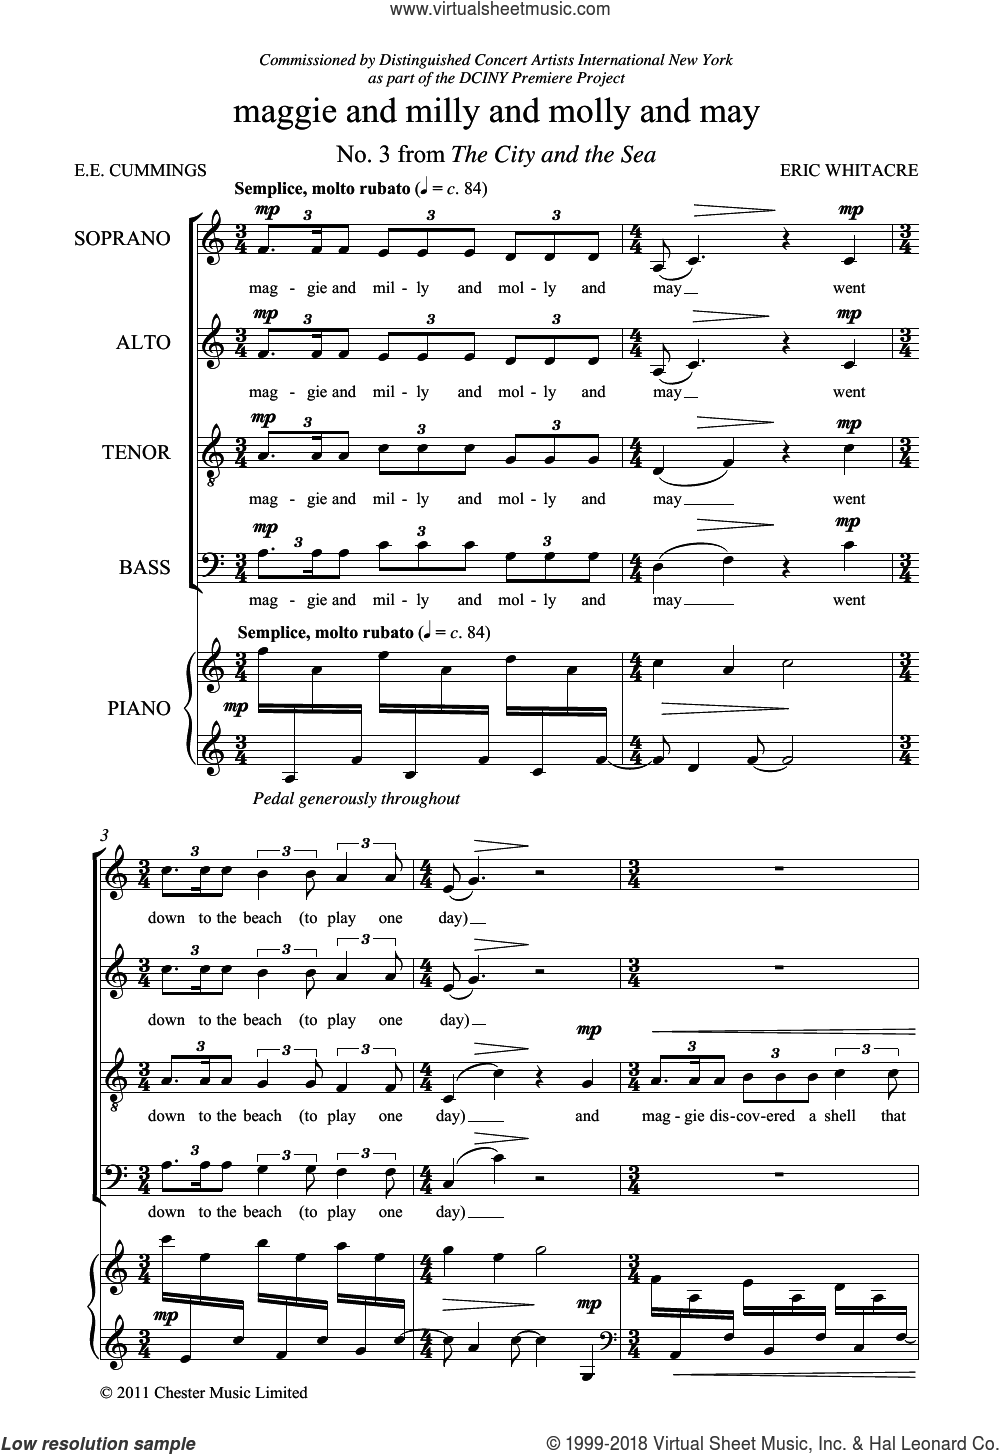 Maggie And Milly And Molly And May (From 'The City And The Sea') sheet music for choir and piano by E.E. Cummings